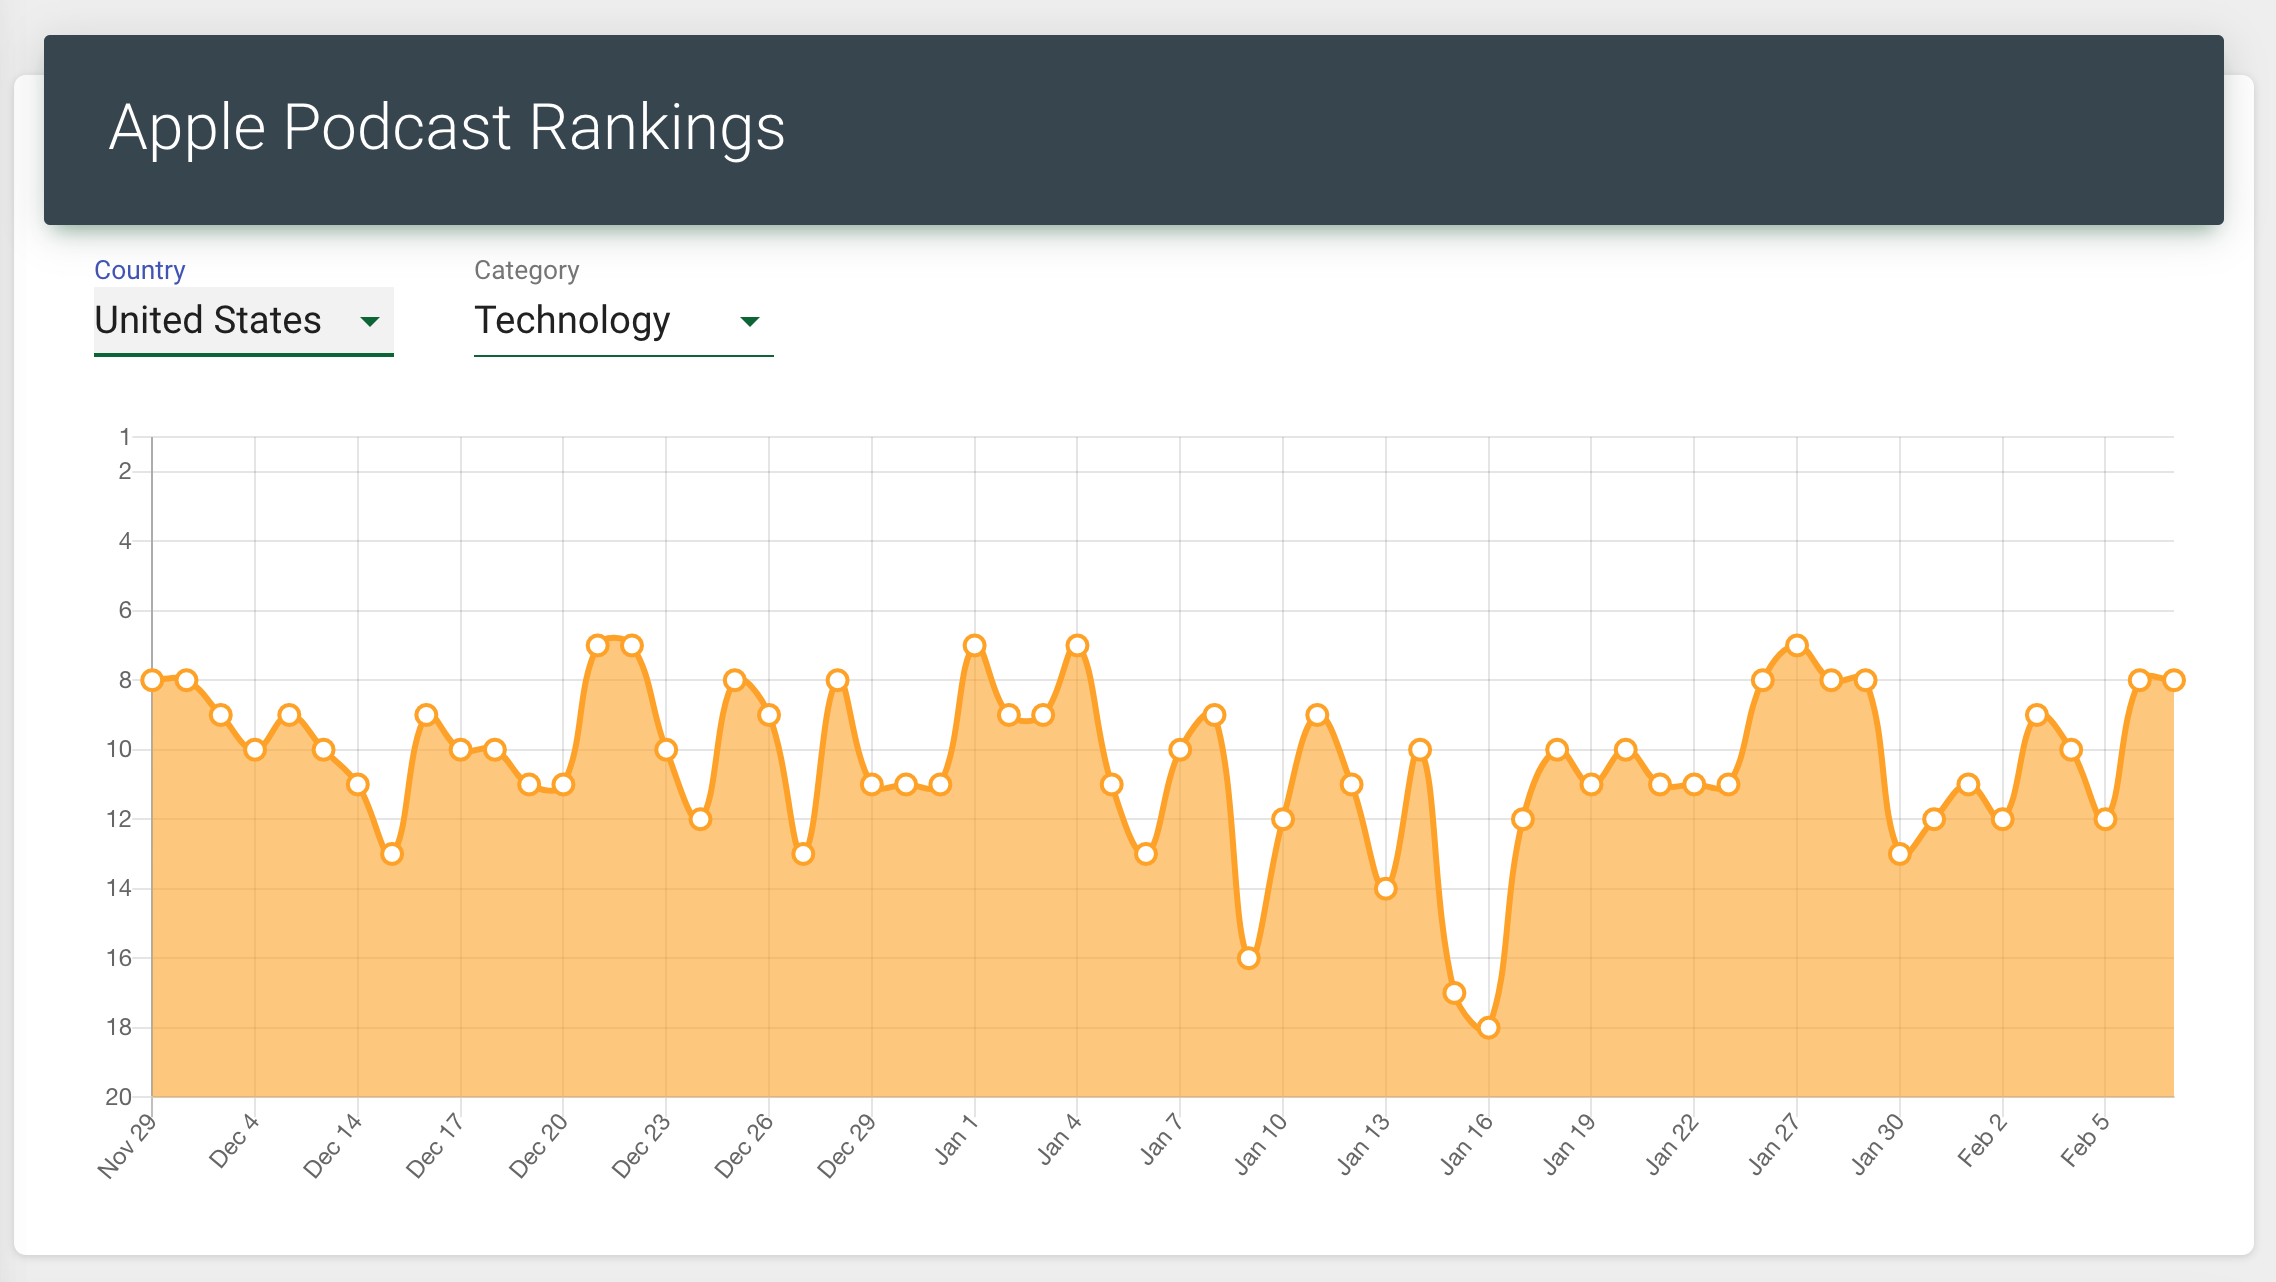 podcast-rankings-a16z-data-apple-1.png